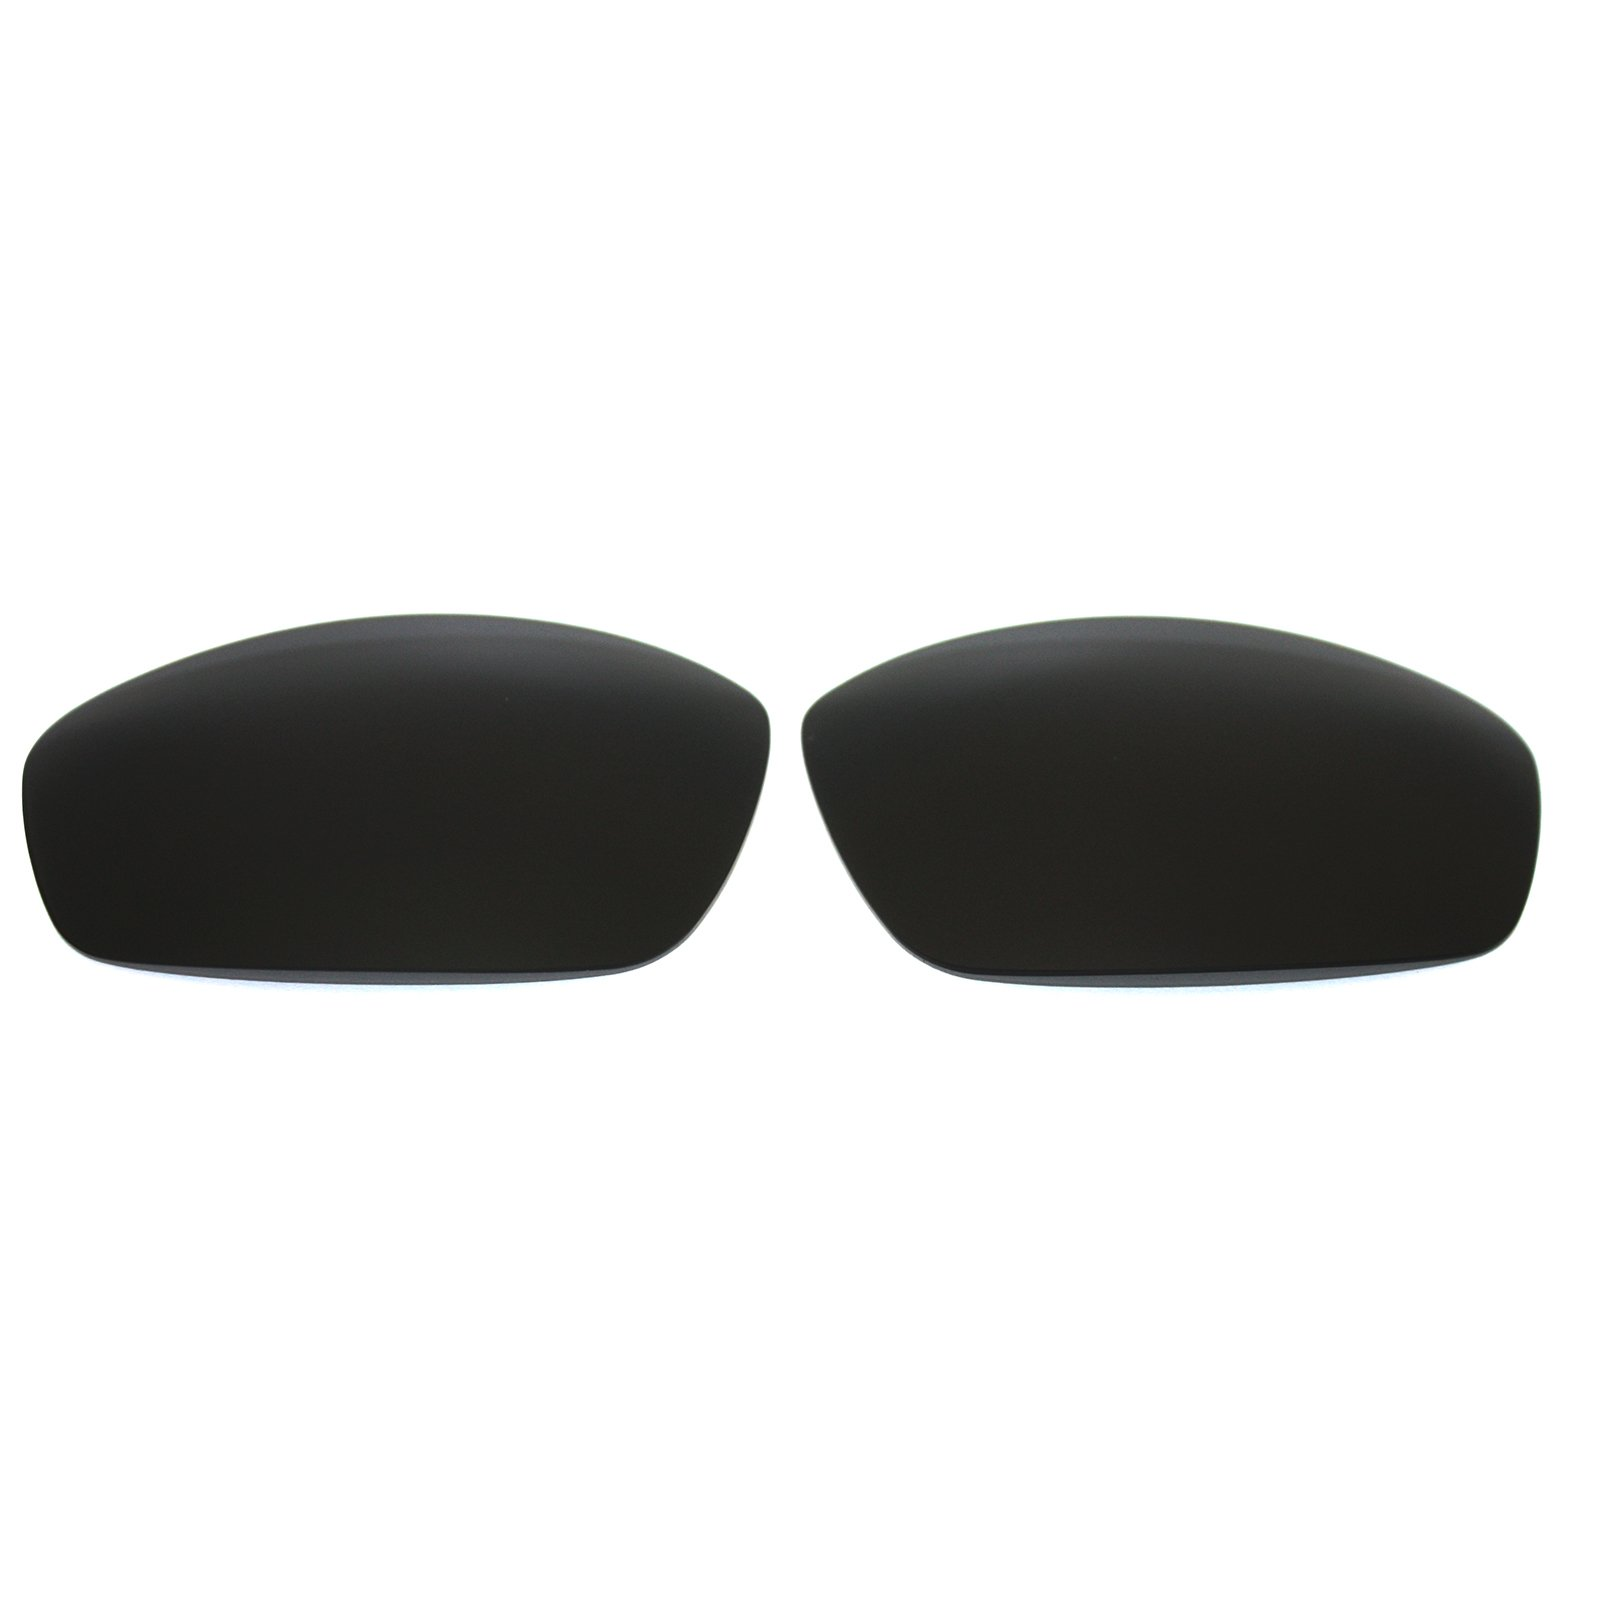 Polarized Replacement Sunglasses Lenses for Spy Optic Kash - Black by Ac Lens